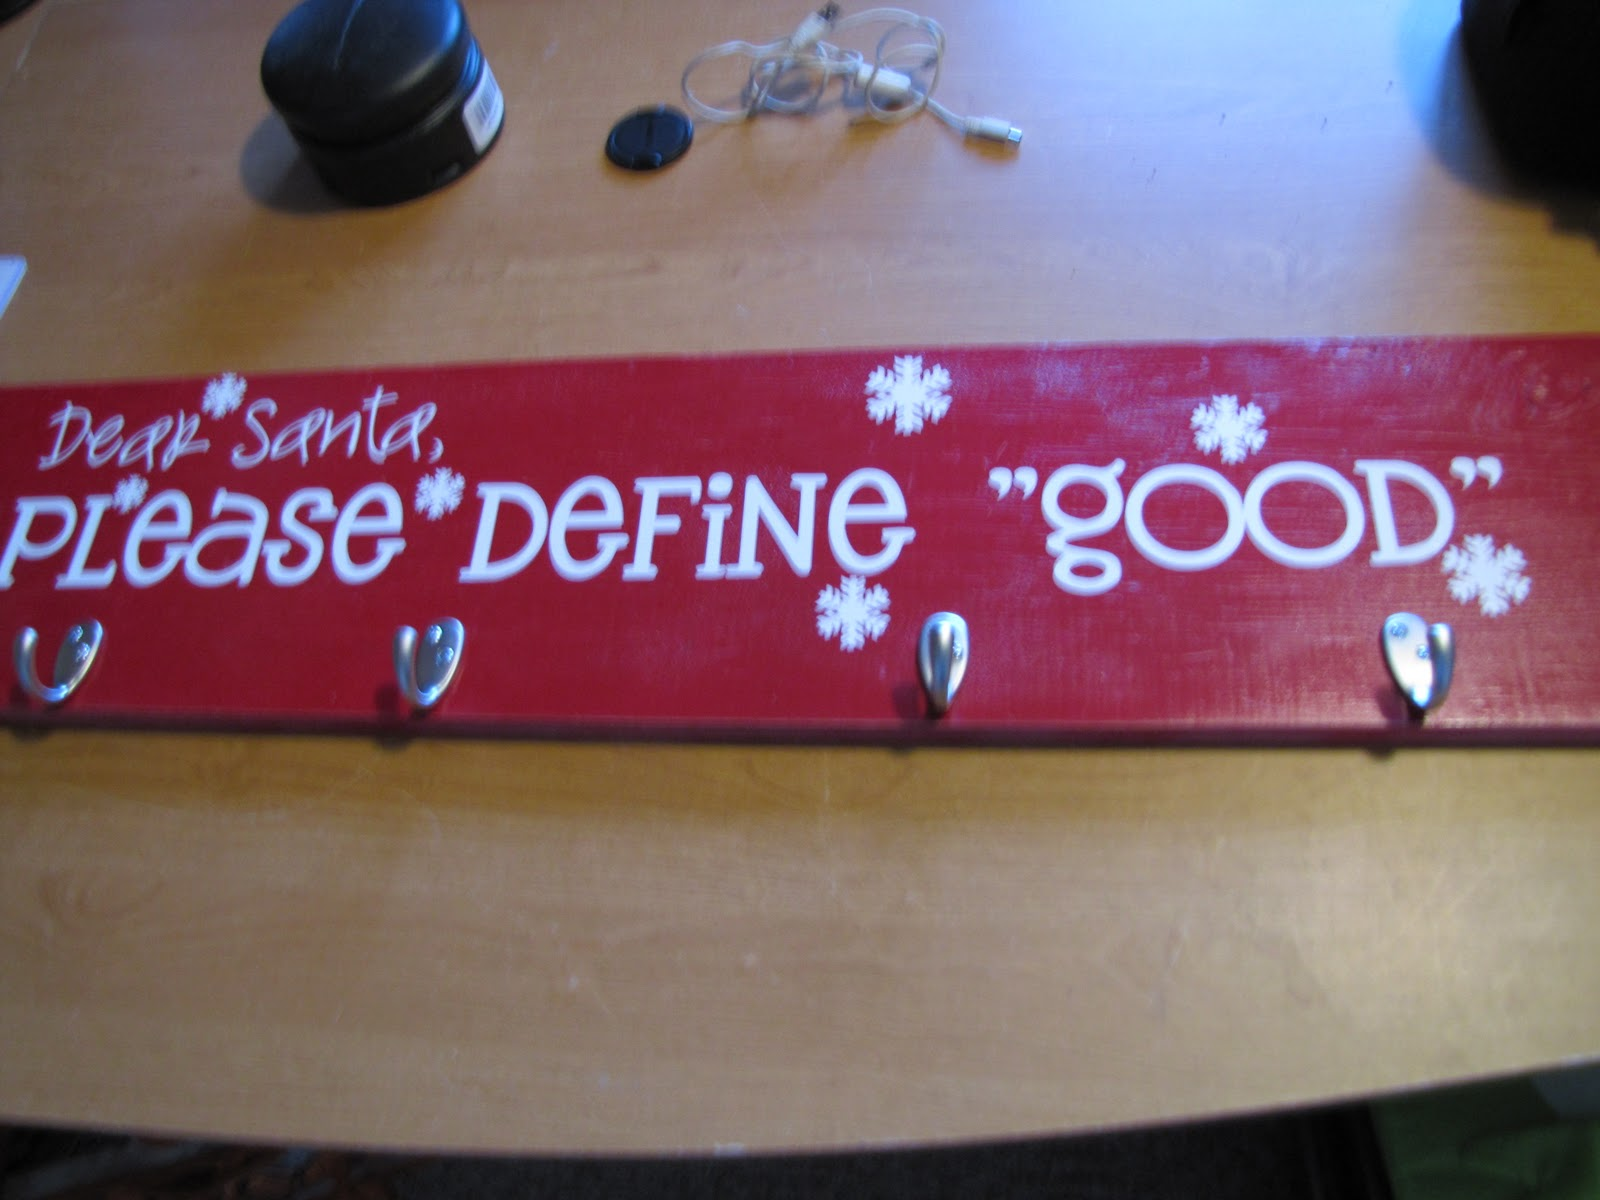 Diy Christmas Stocking Hanger With Wood And Inspiring Words Ideas